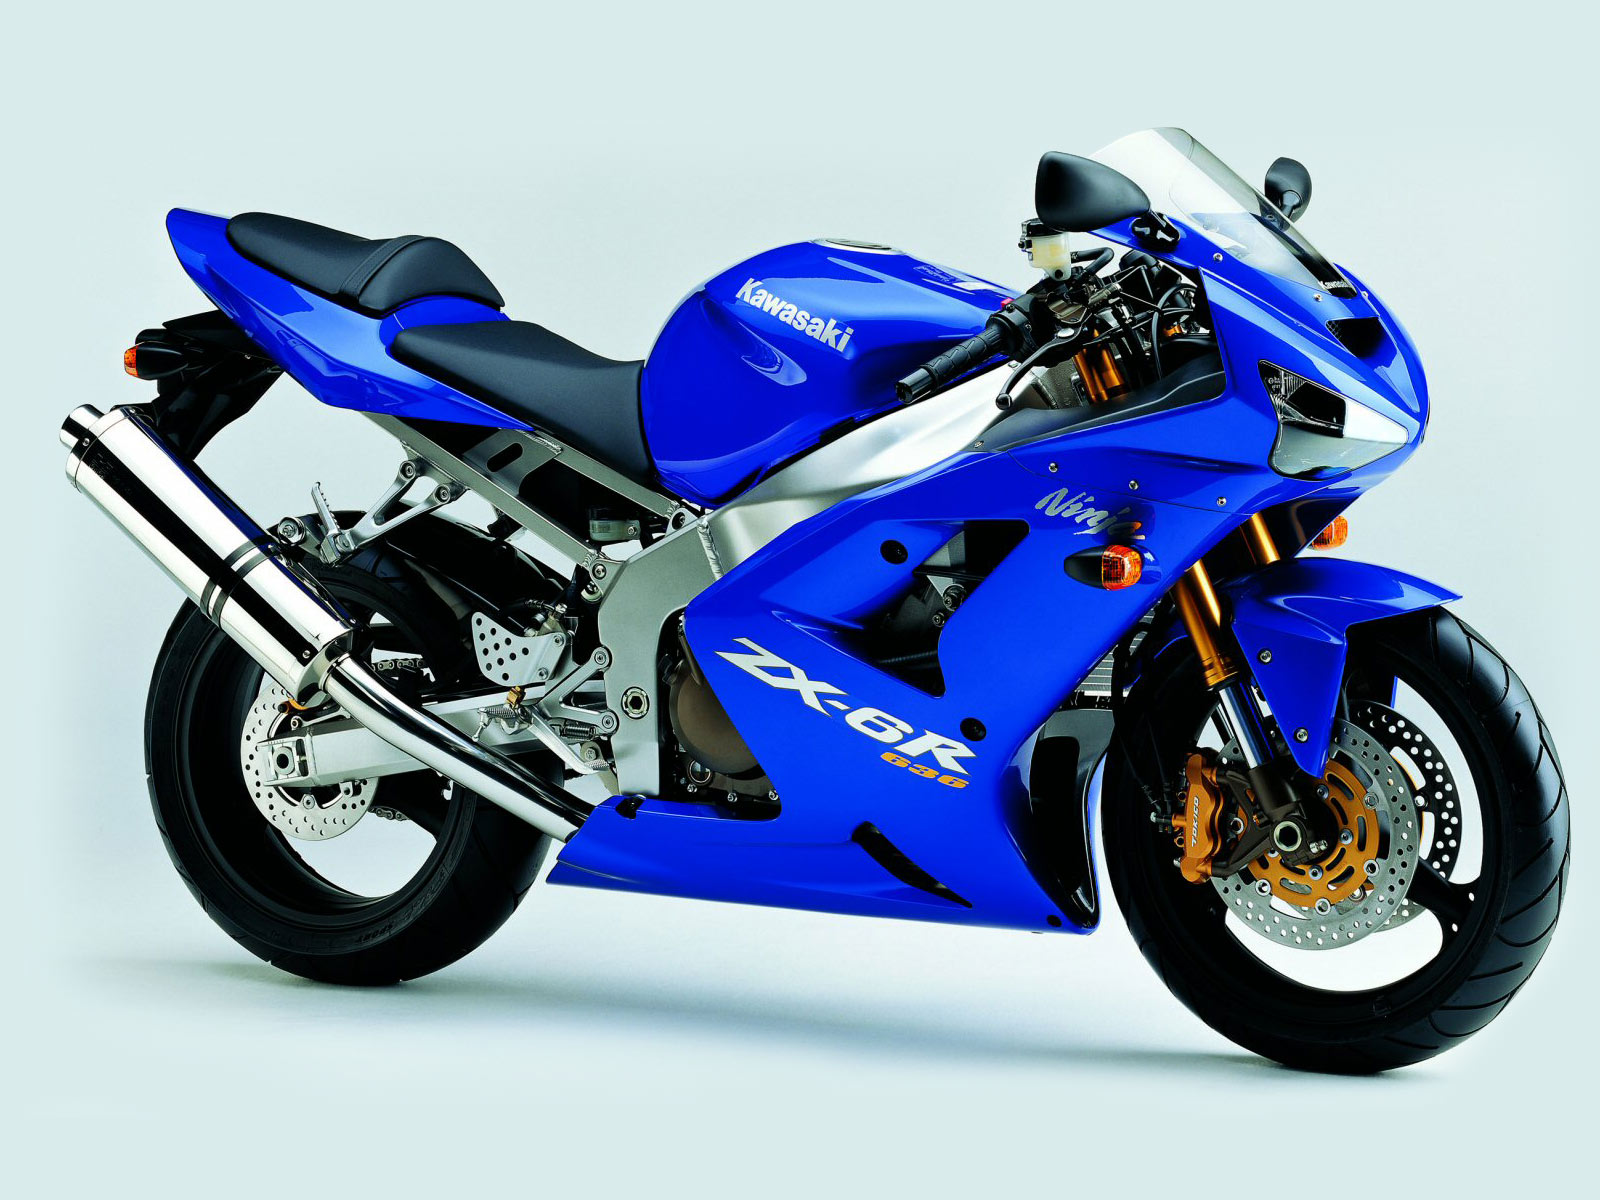 kawasaki ninja zx 6r review and photos. Black Bedroom Furniture Sets. Home Design Ideas